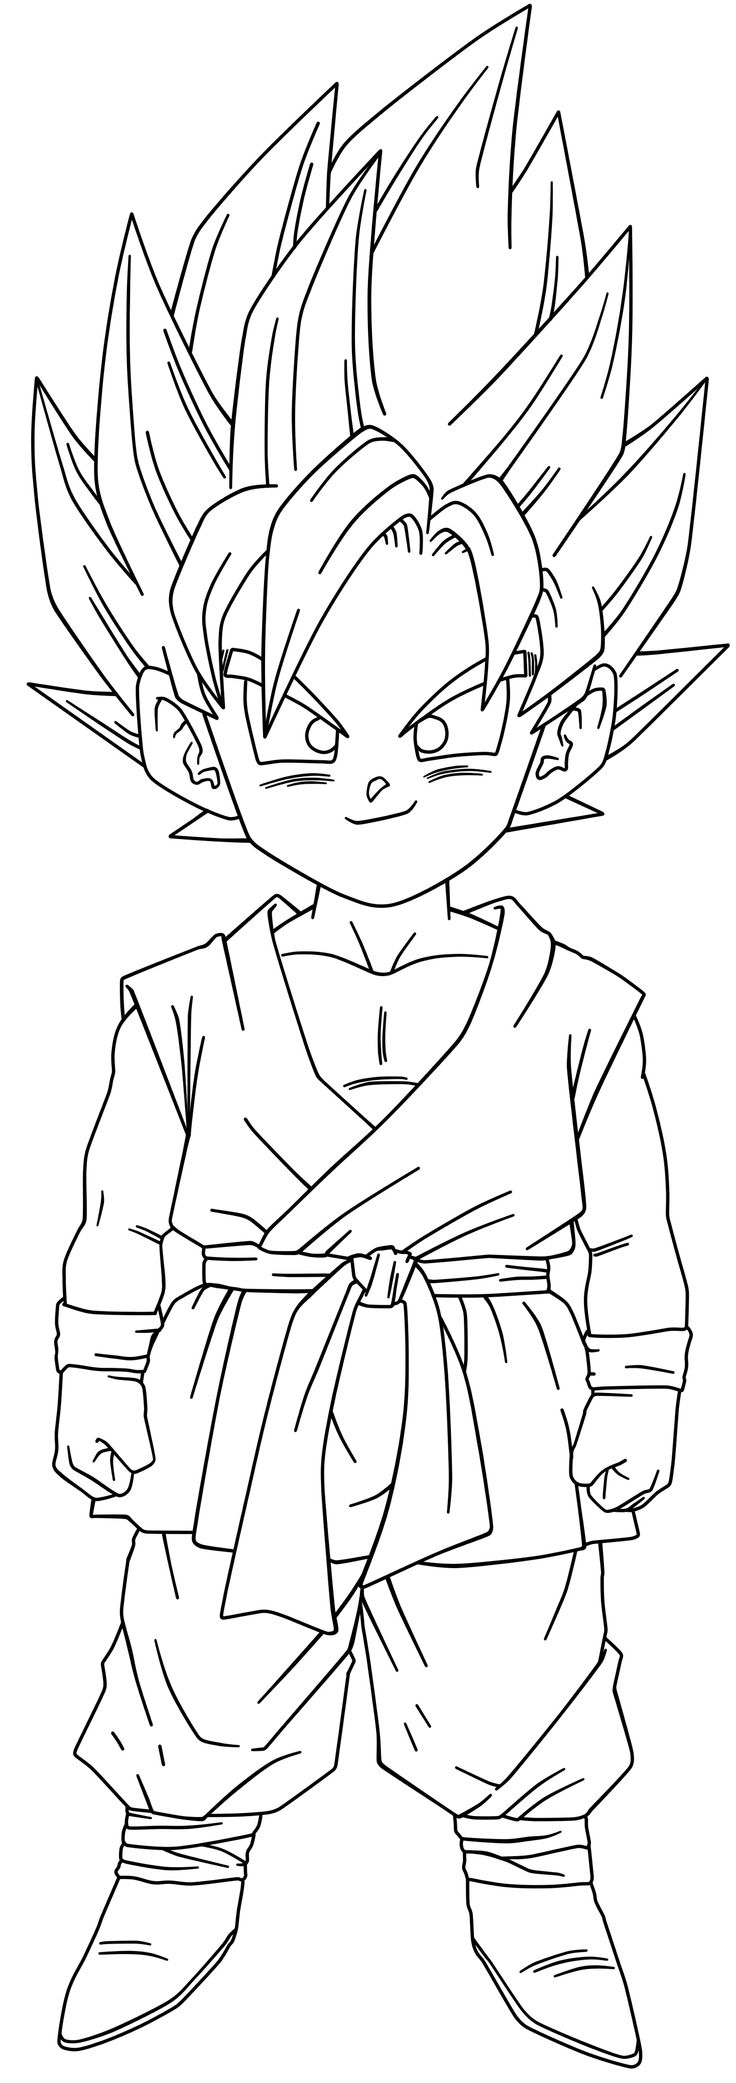 Goku ssj2 free coloring pages for Goku coloring page